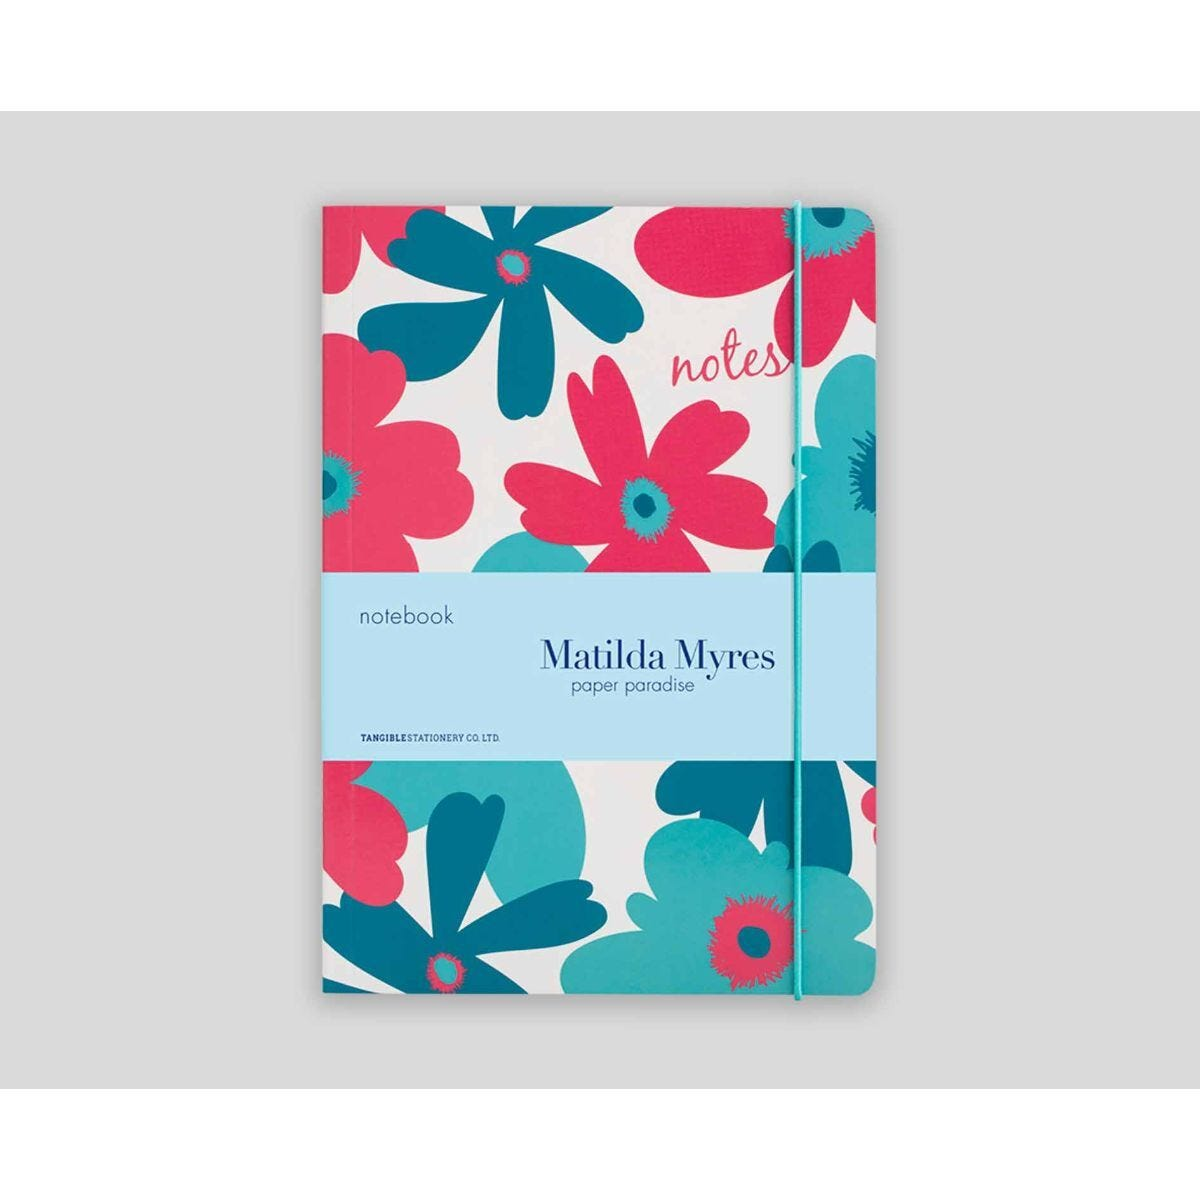 Matilda Myres Floral Notebook Ruled A5 192 Pages Blue